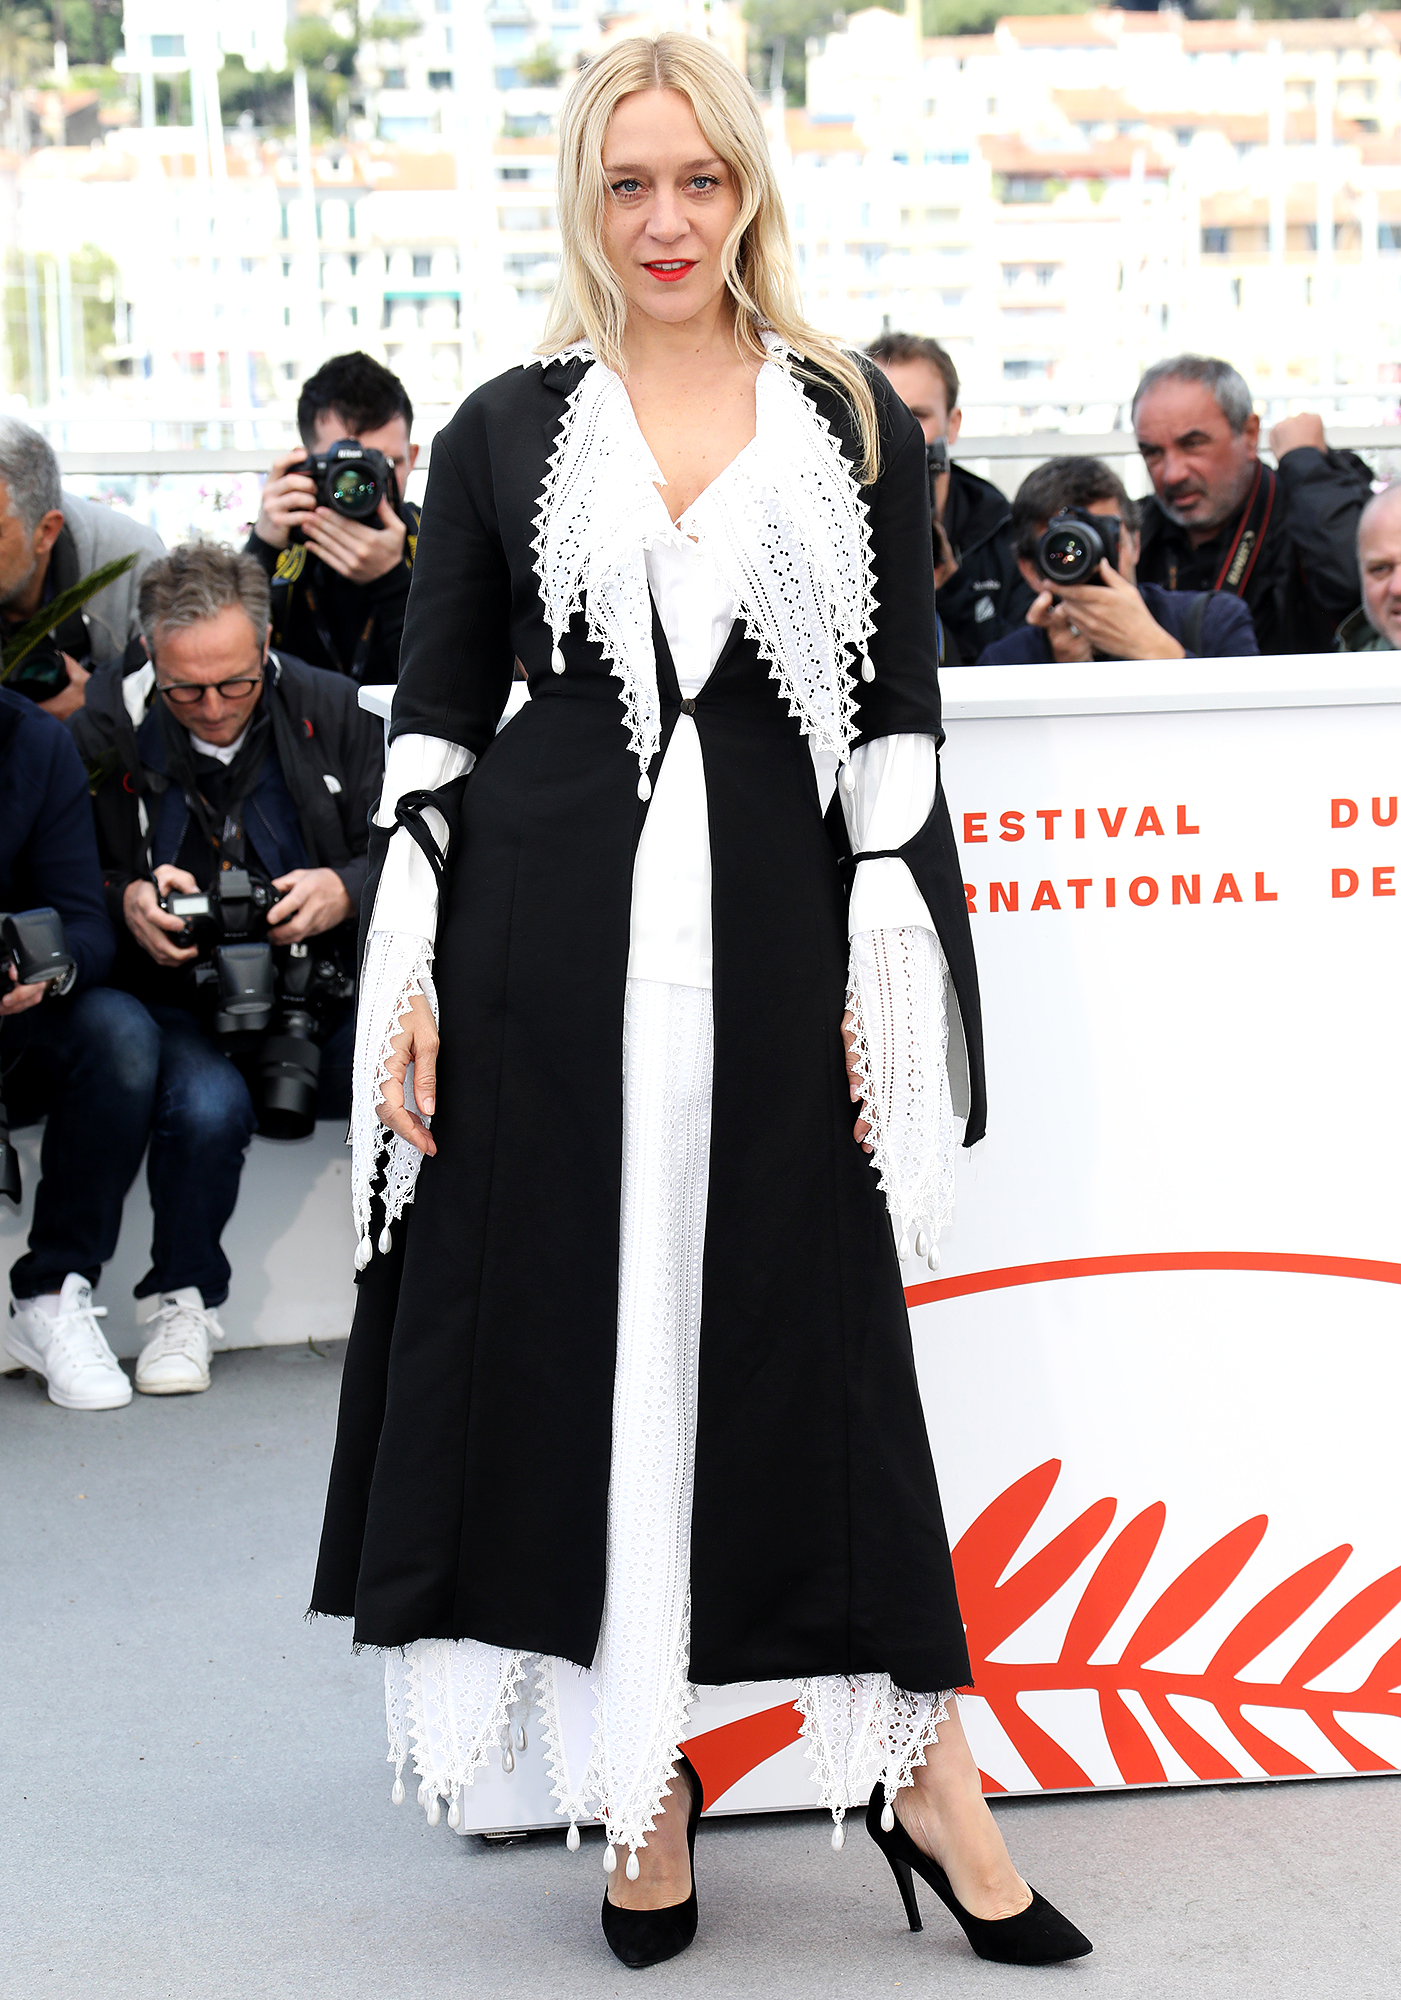 Chloe-Sevigny - Our favorite part of the Dead Don't Die star's black-and-white ensemble at the film's photo-call on Wednesday, May 15? Her bright red lip.